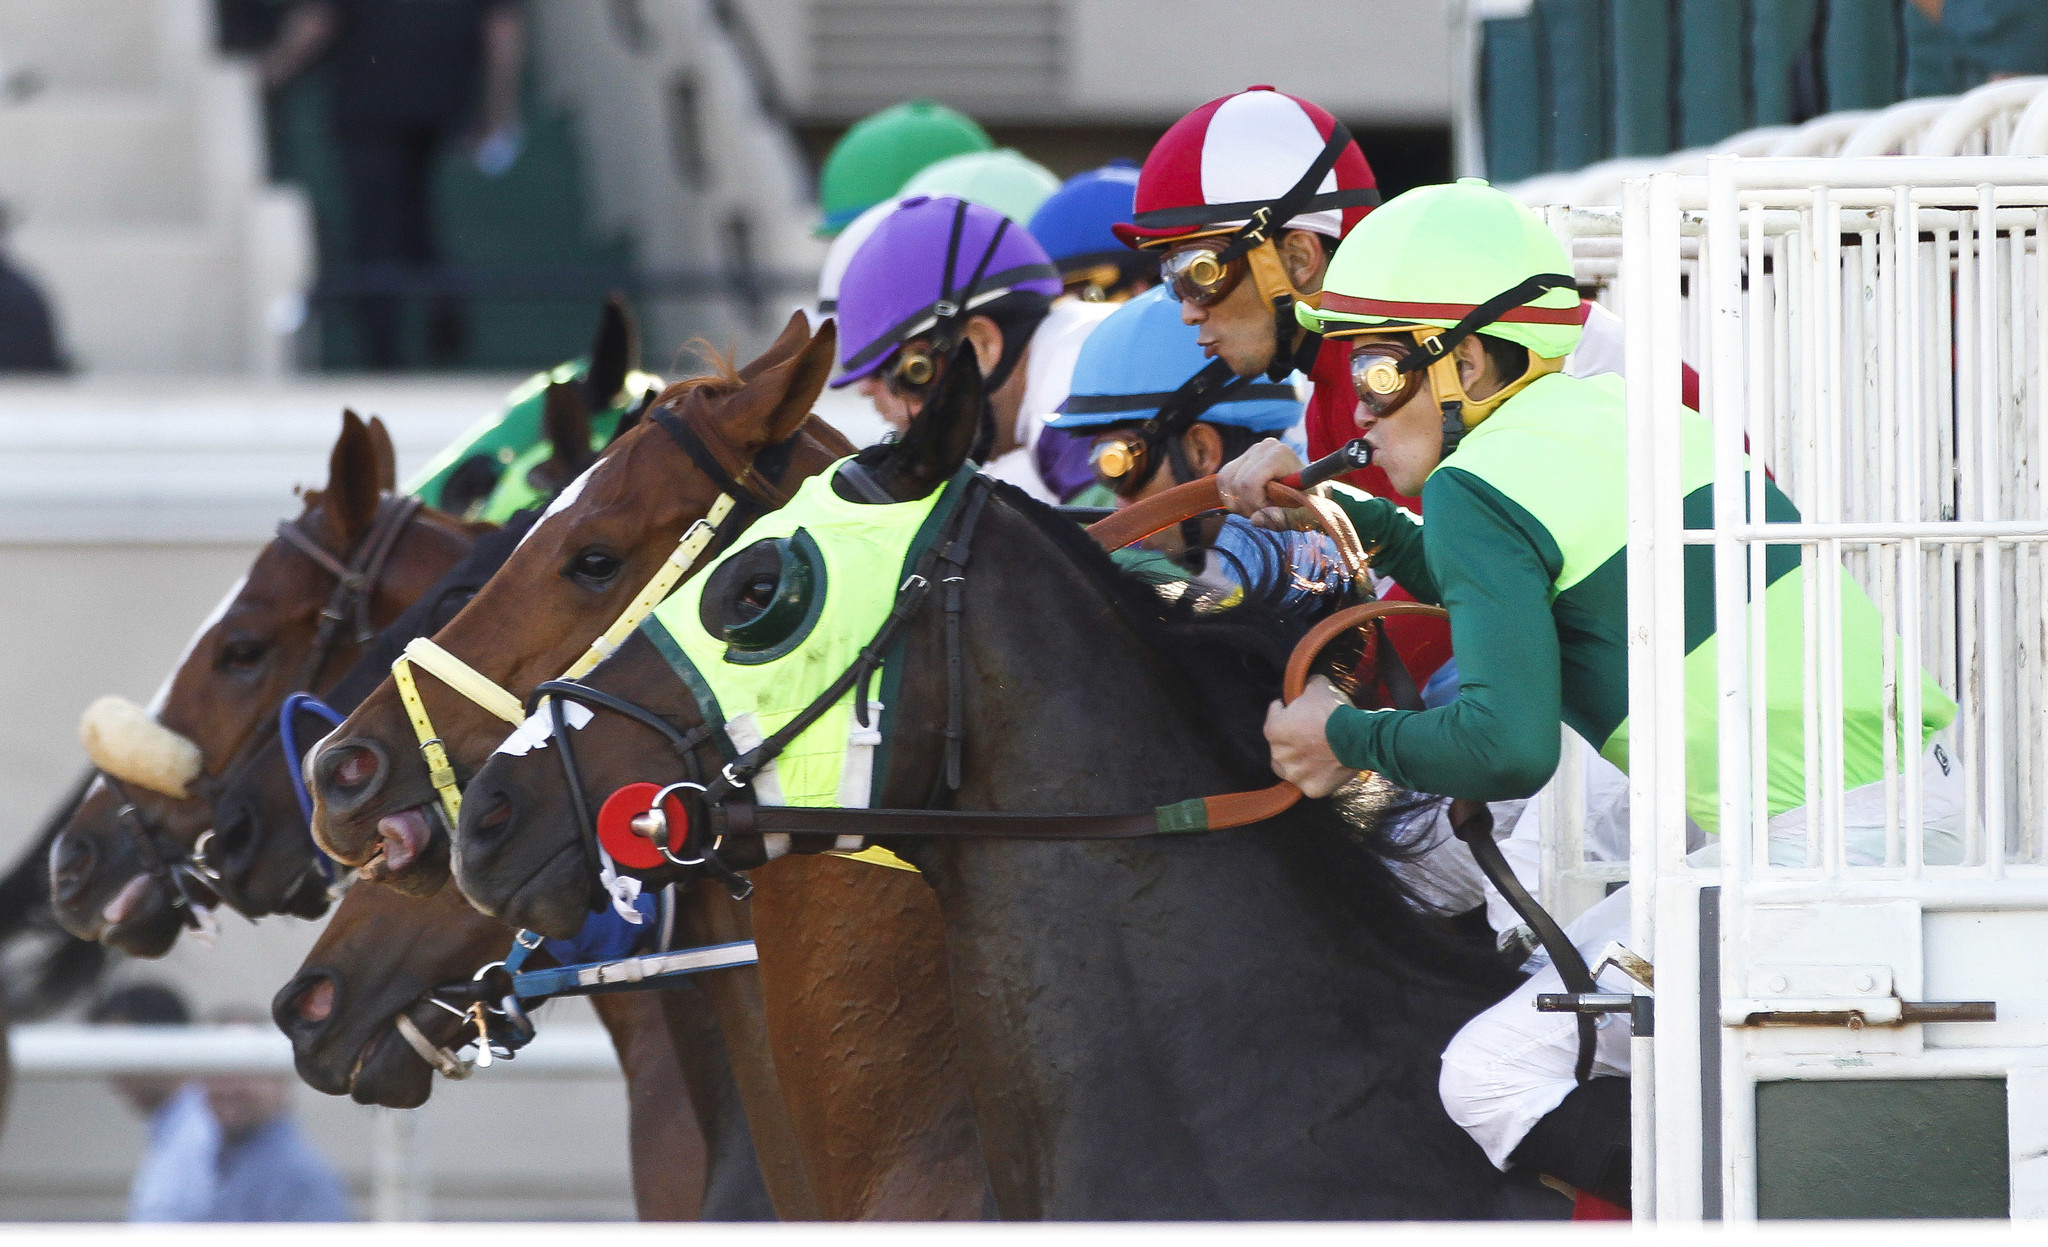 Horses And Jockeys Bolt Out Of The Gate At Start A Recent Race